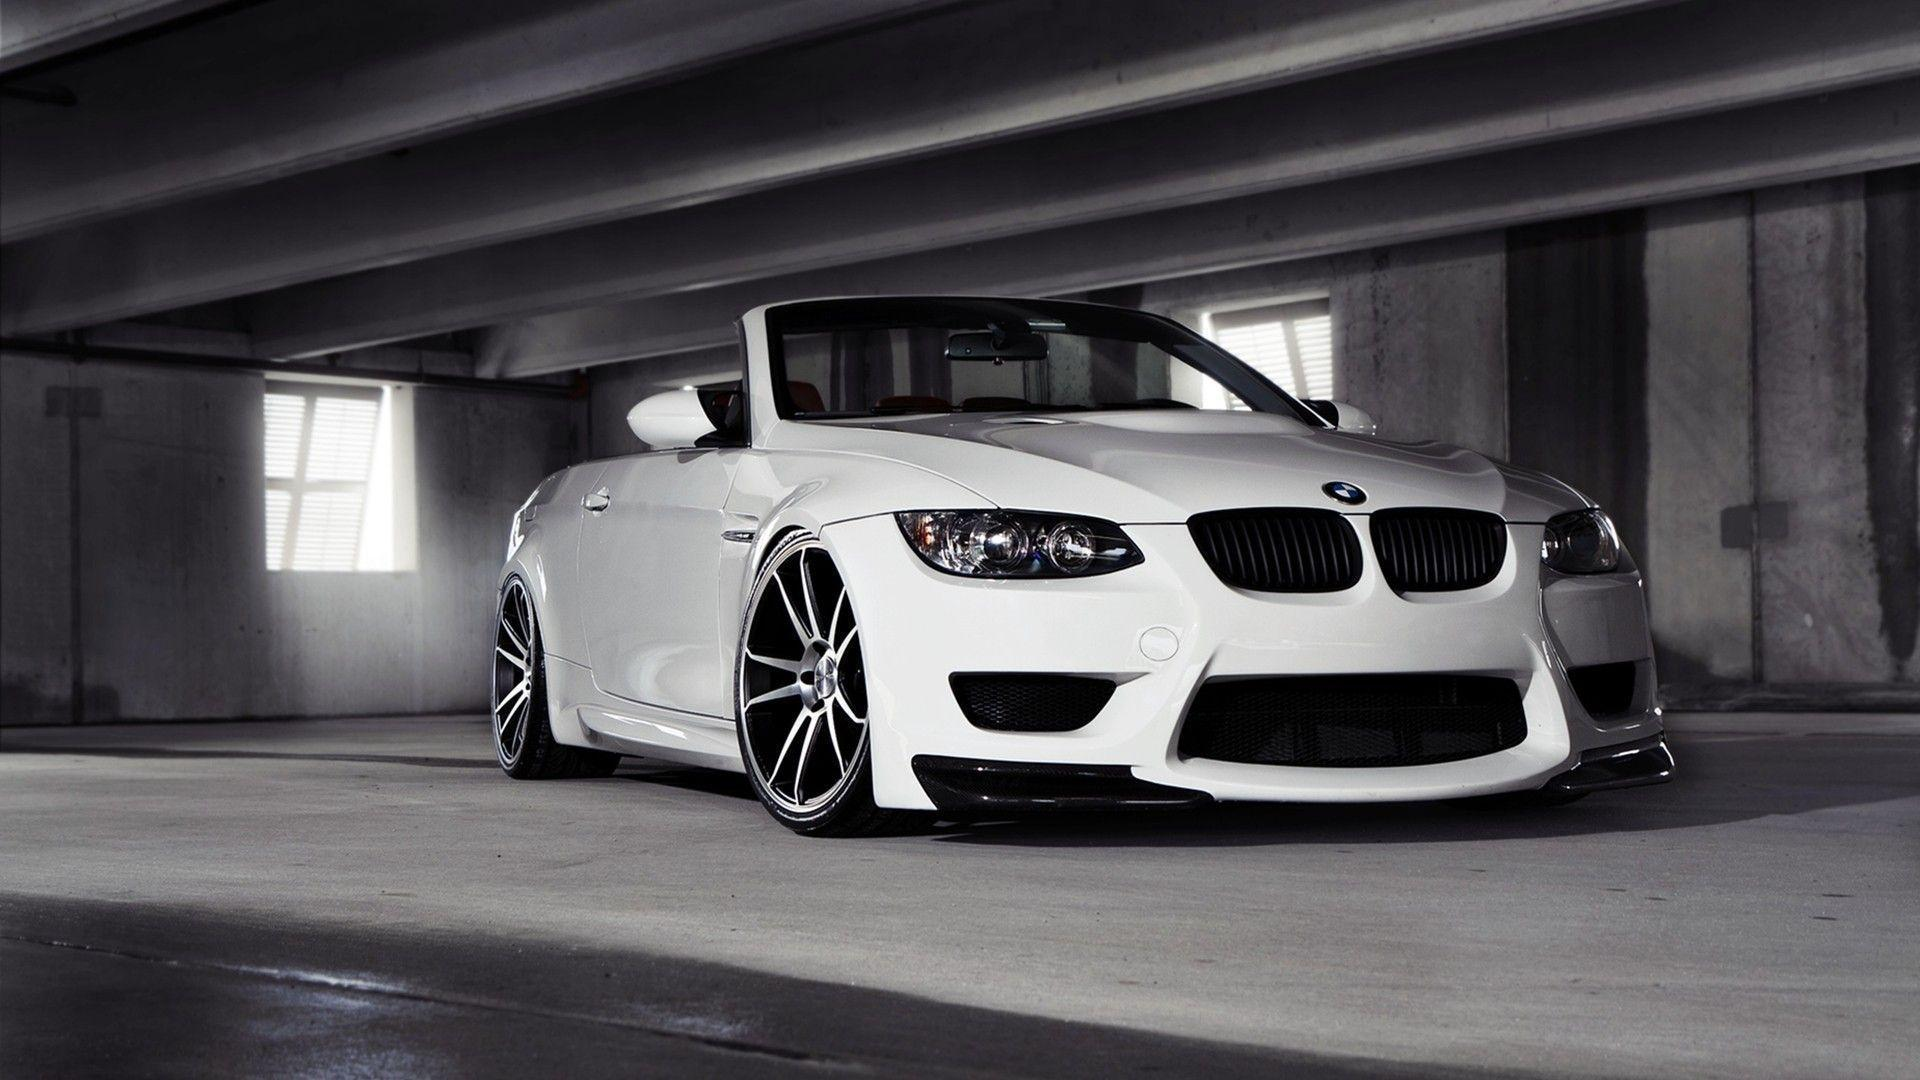 2014 BMW M3 White WallpaperWallpic.us